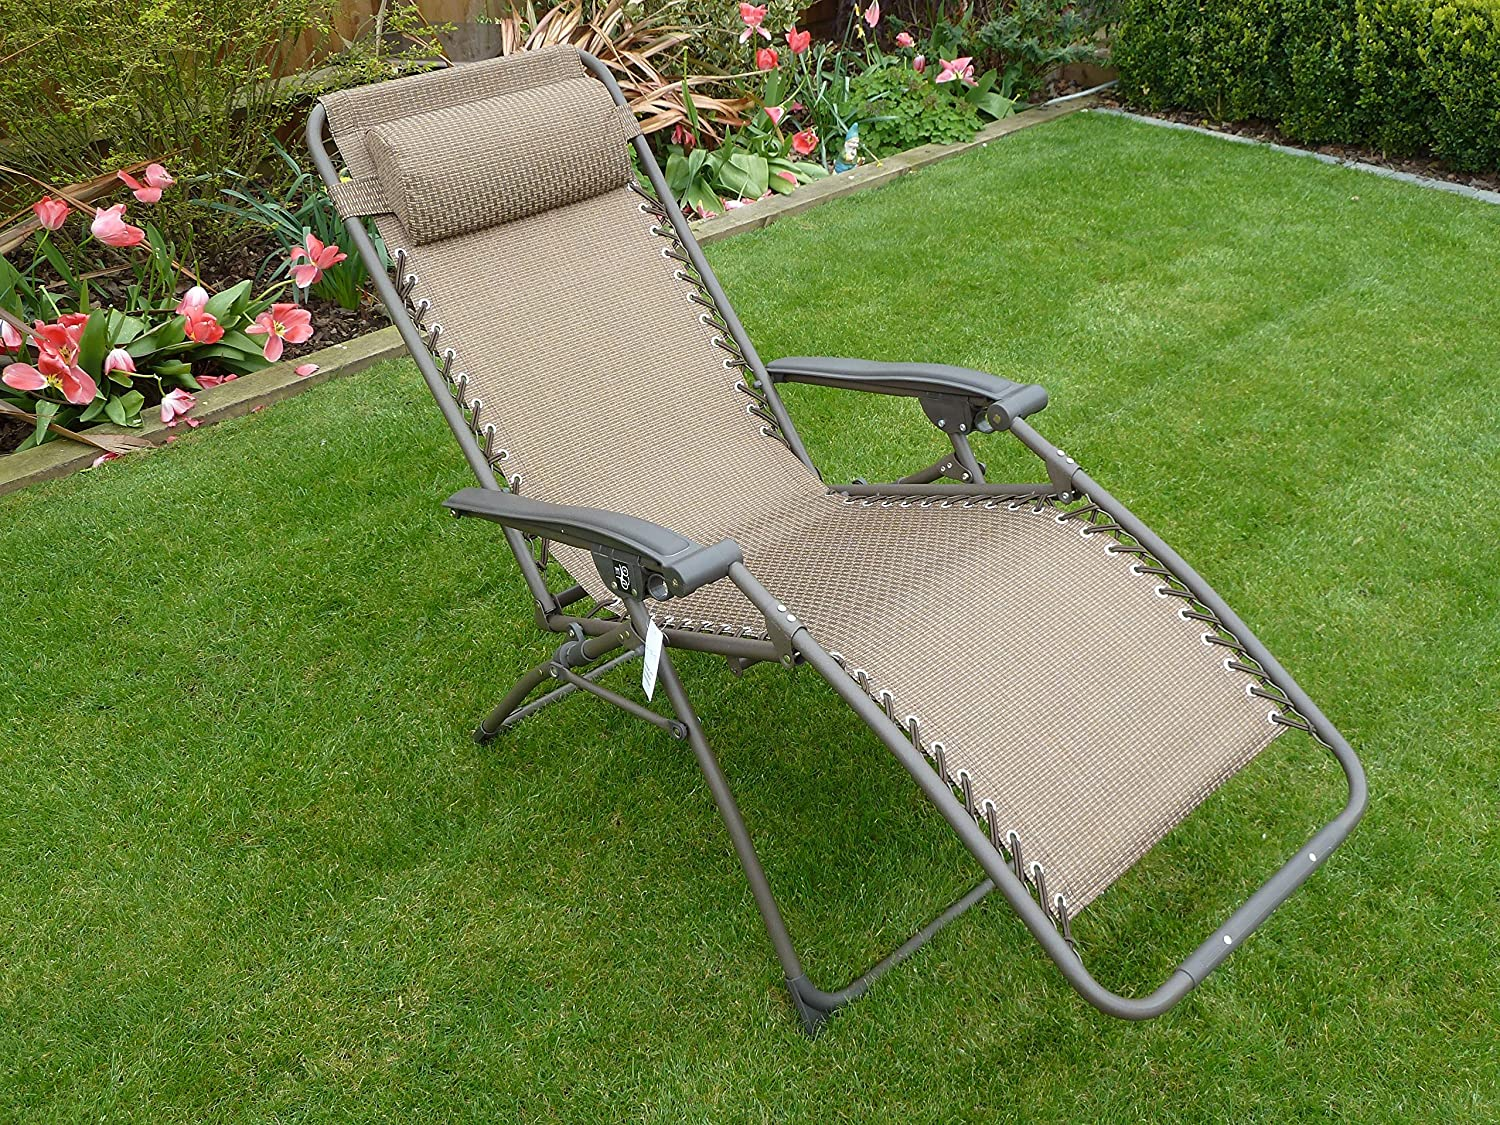 SET OF 2 Brown Garden Sun Lounger Relaxer Recliner Garden Chairs Weatherproof Textoline Folding And Multi Position With A Headrest Amazon.co.uk Garden u0026 ... & SET OF 2 Brown Garden Sun Lounger Relaxer Recliner Garden Chairs ... islam-shia.org